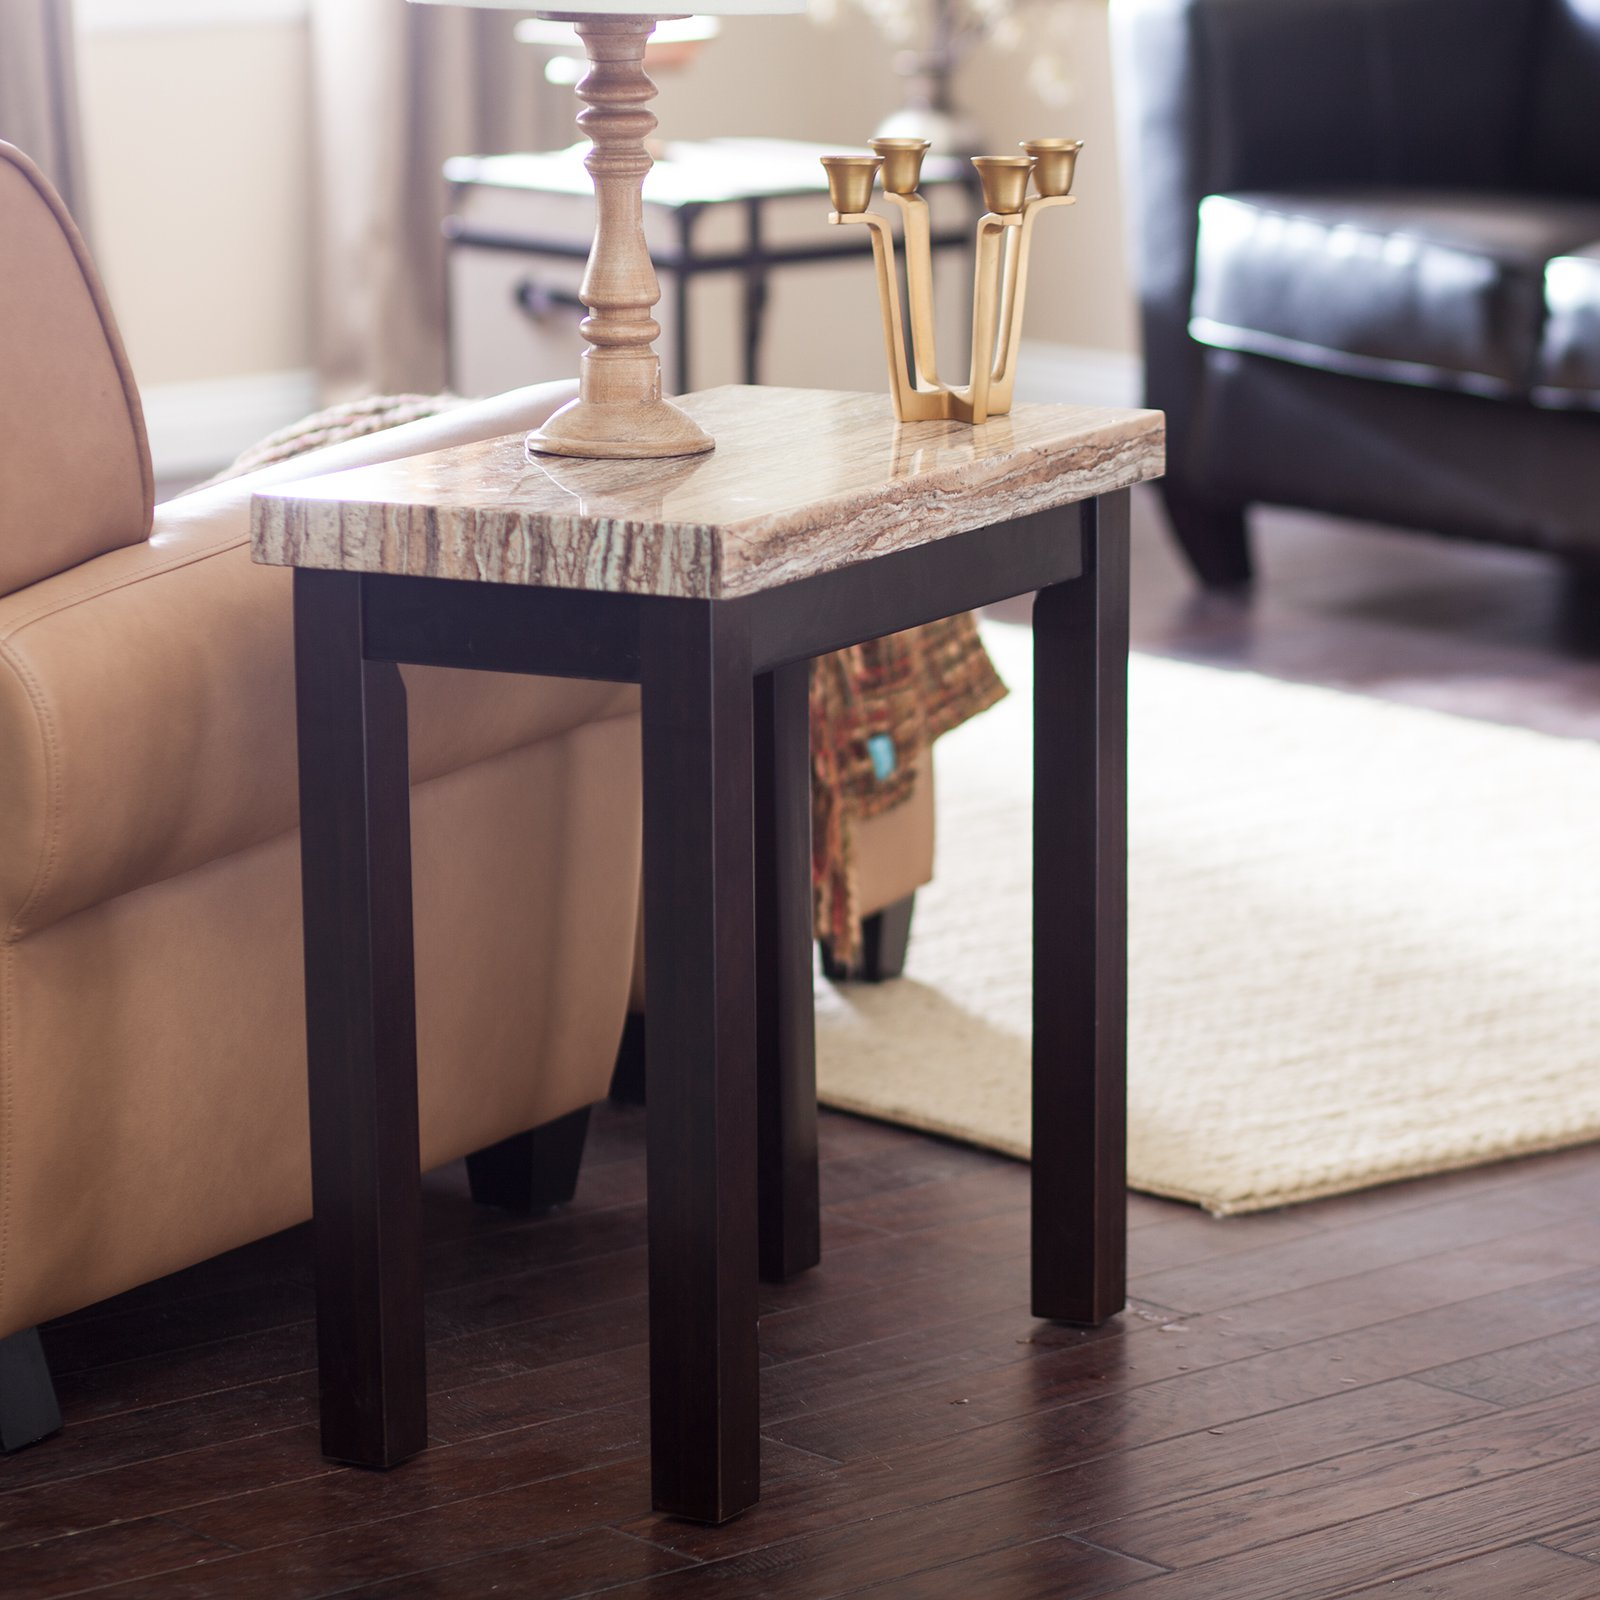 end table marble top coffee small side antique tables with high dining set distressed wood headboard ethan allen country crossings magazine rack lamp christmas centerpiece ideas